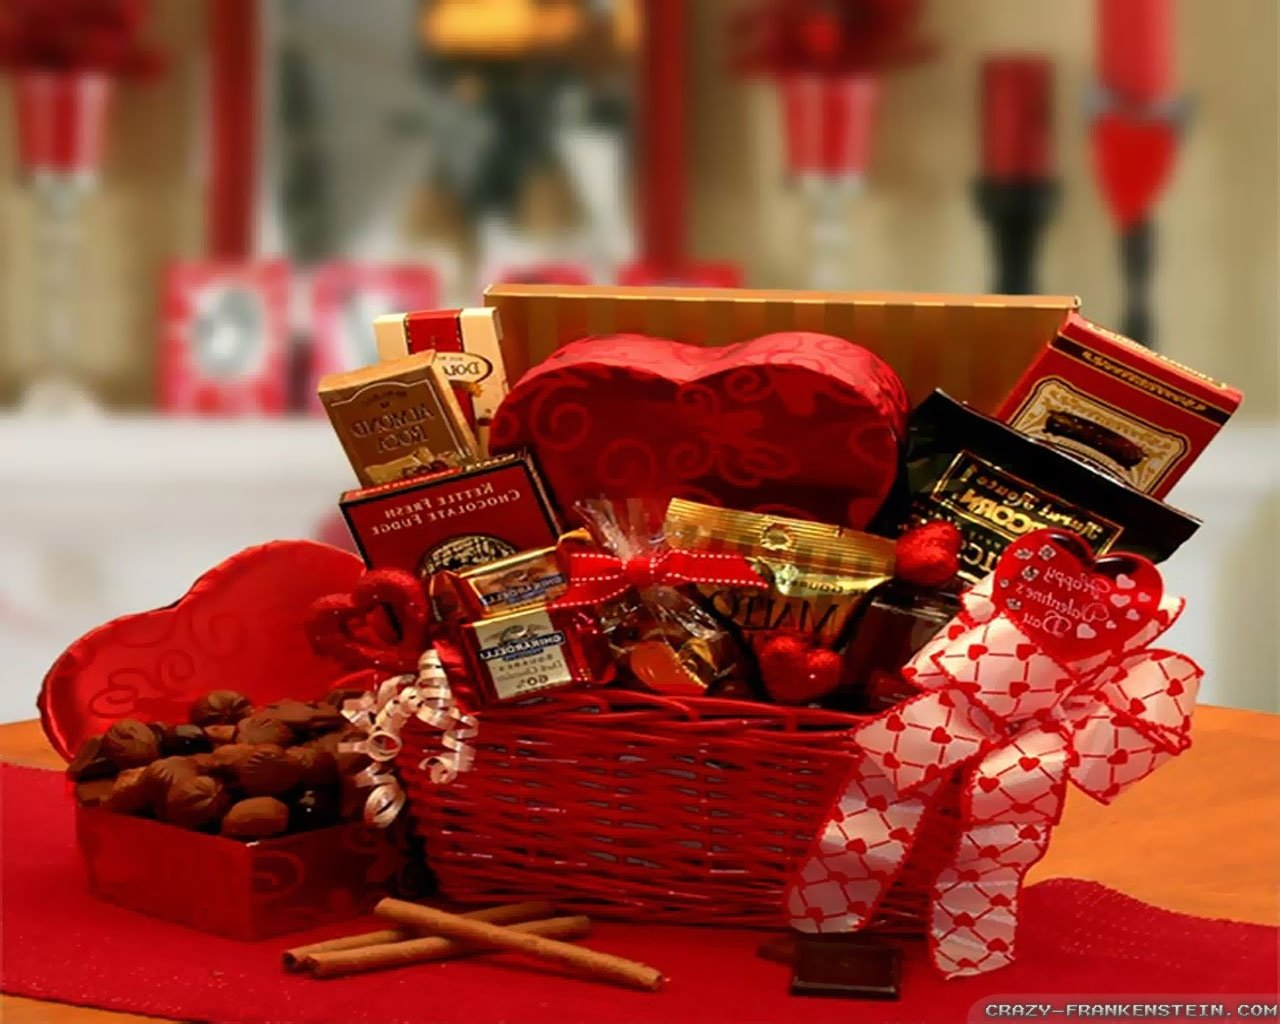 10 Cute Romantic Gift Ideas For Him gift ideas for boyfriend romantic gift ideas for him valentines day 1